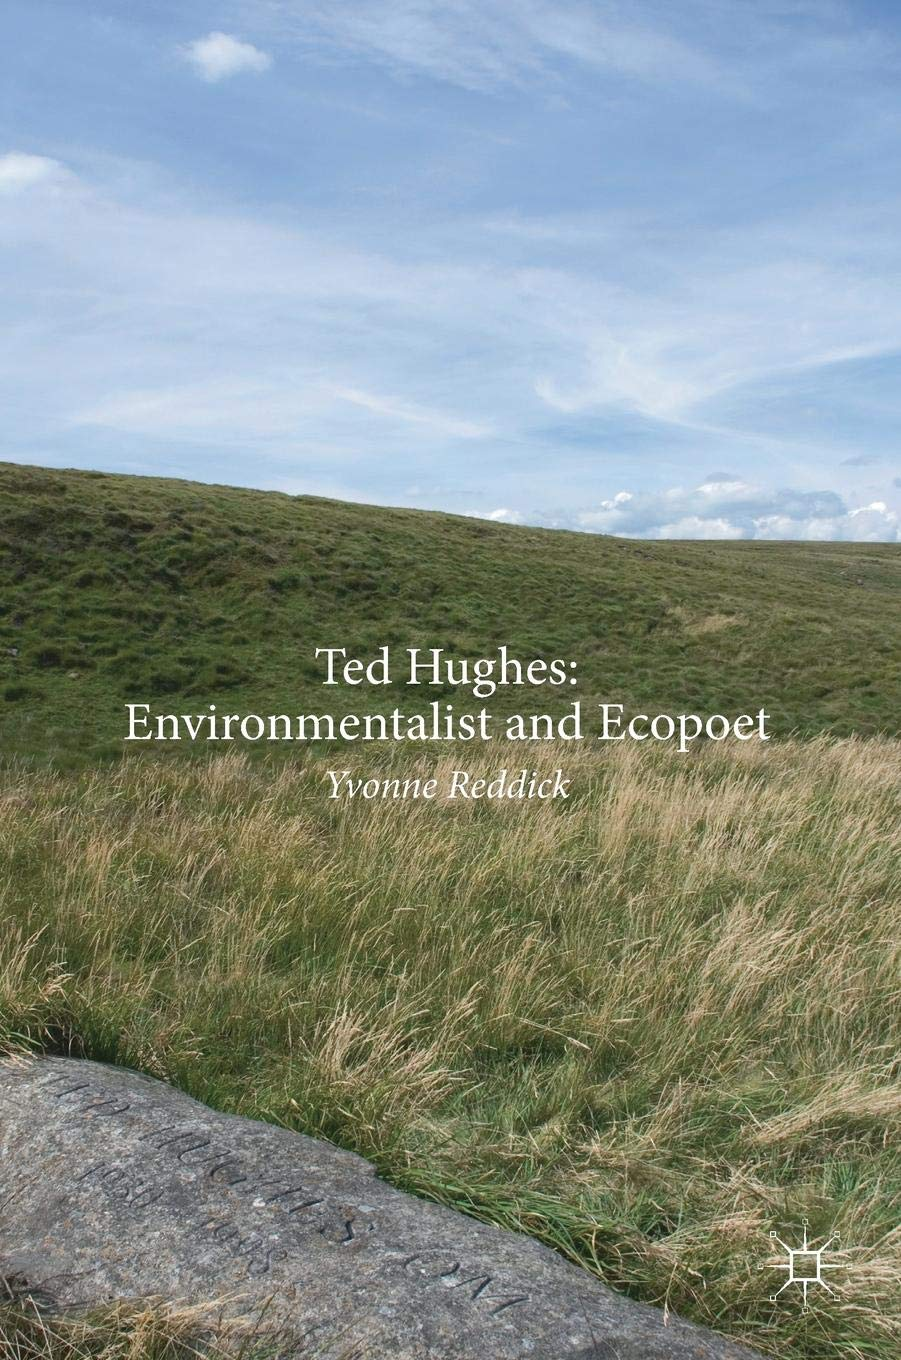 Ted Hughes: Environmentalist and Ecopoet by Palgrave Macmillan